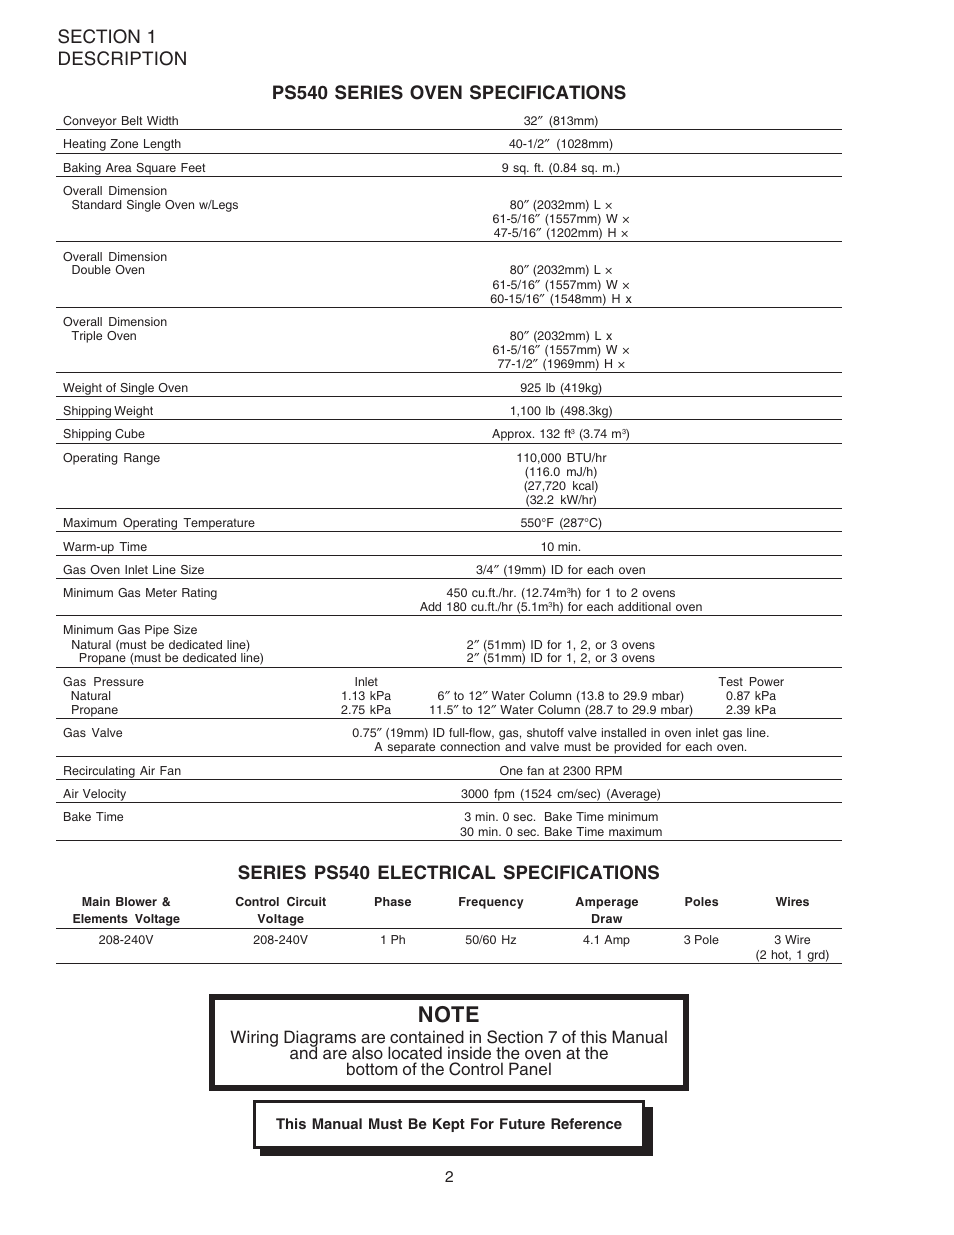 Series Ps540 Electrical Specifications Middleby Marshall Baking Oven Wiring Diagram Ovens Ps540g User Manual Page 6 76